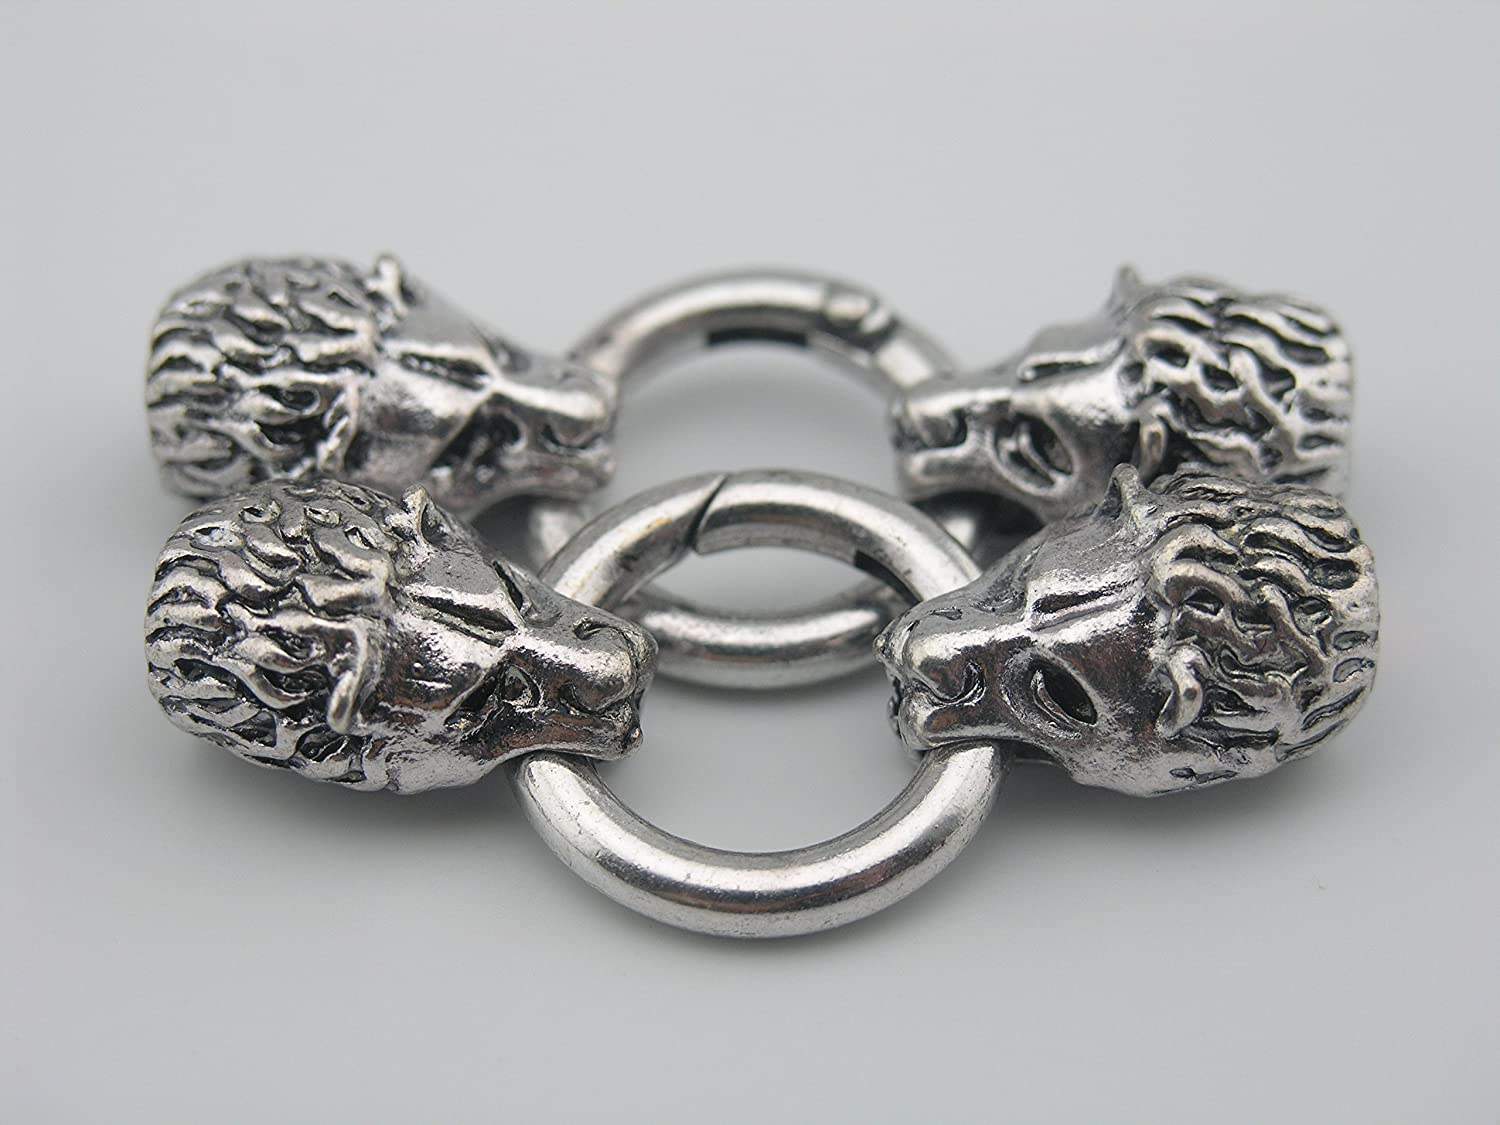 KONMAY 3 Sets Dia. 9.0mm Antique Silver Wolf Head Leather Bracelet End Cap with Spring Clasp